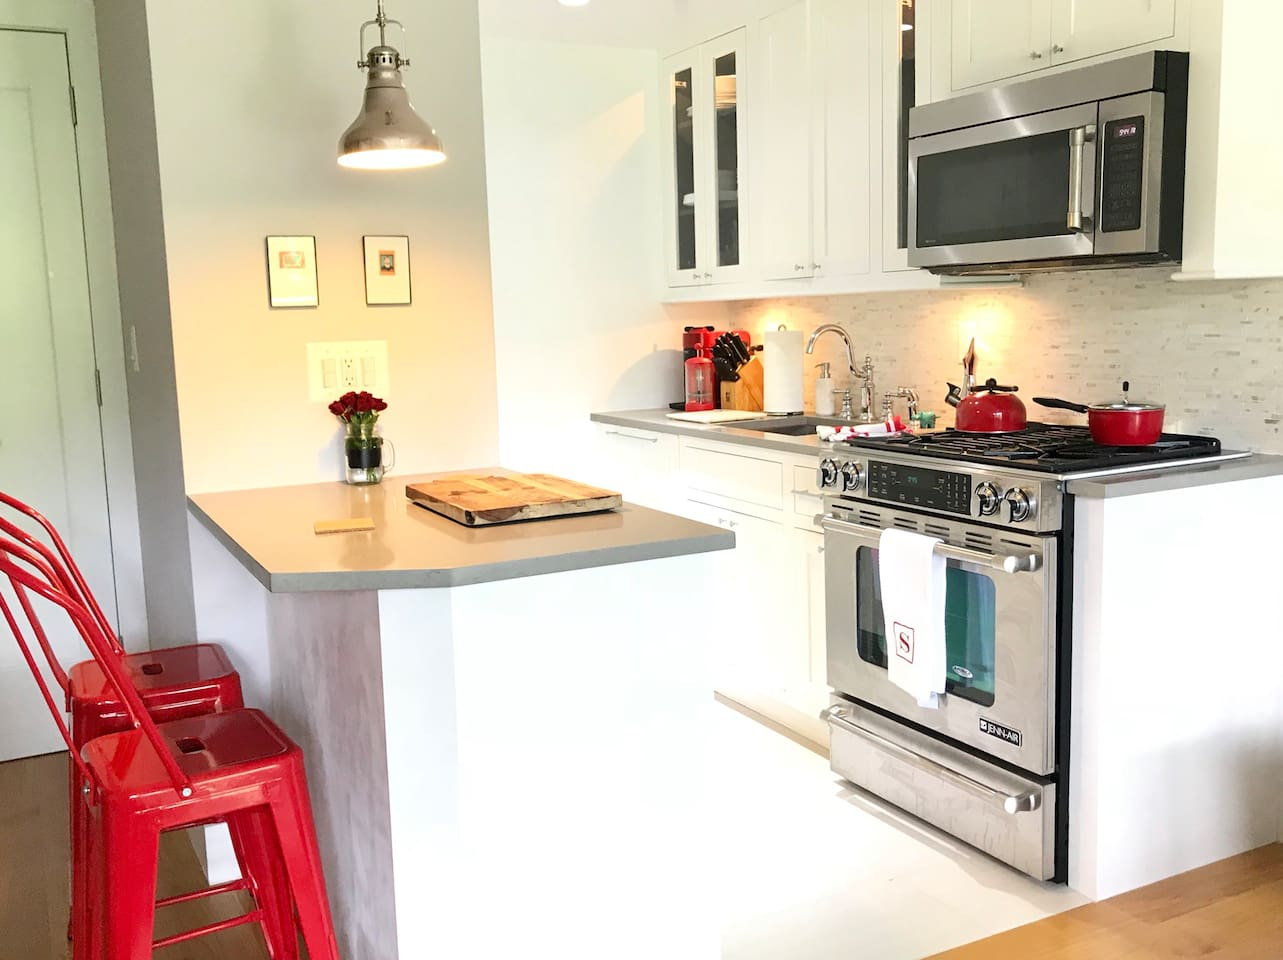 Gorgeous state-of-the-art kitchen with stainless steel appliances, gas stove, dishwasher, and microwave